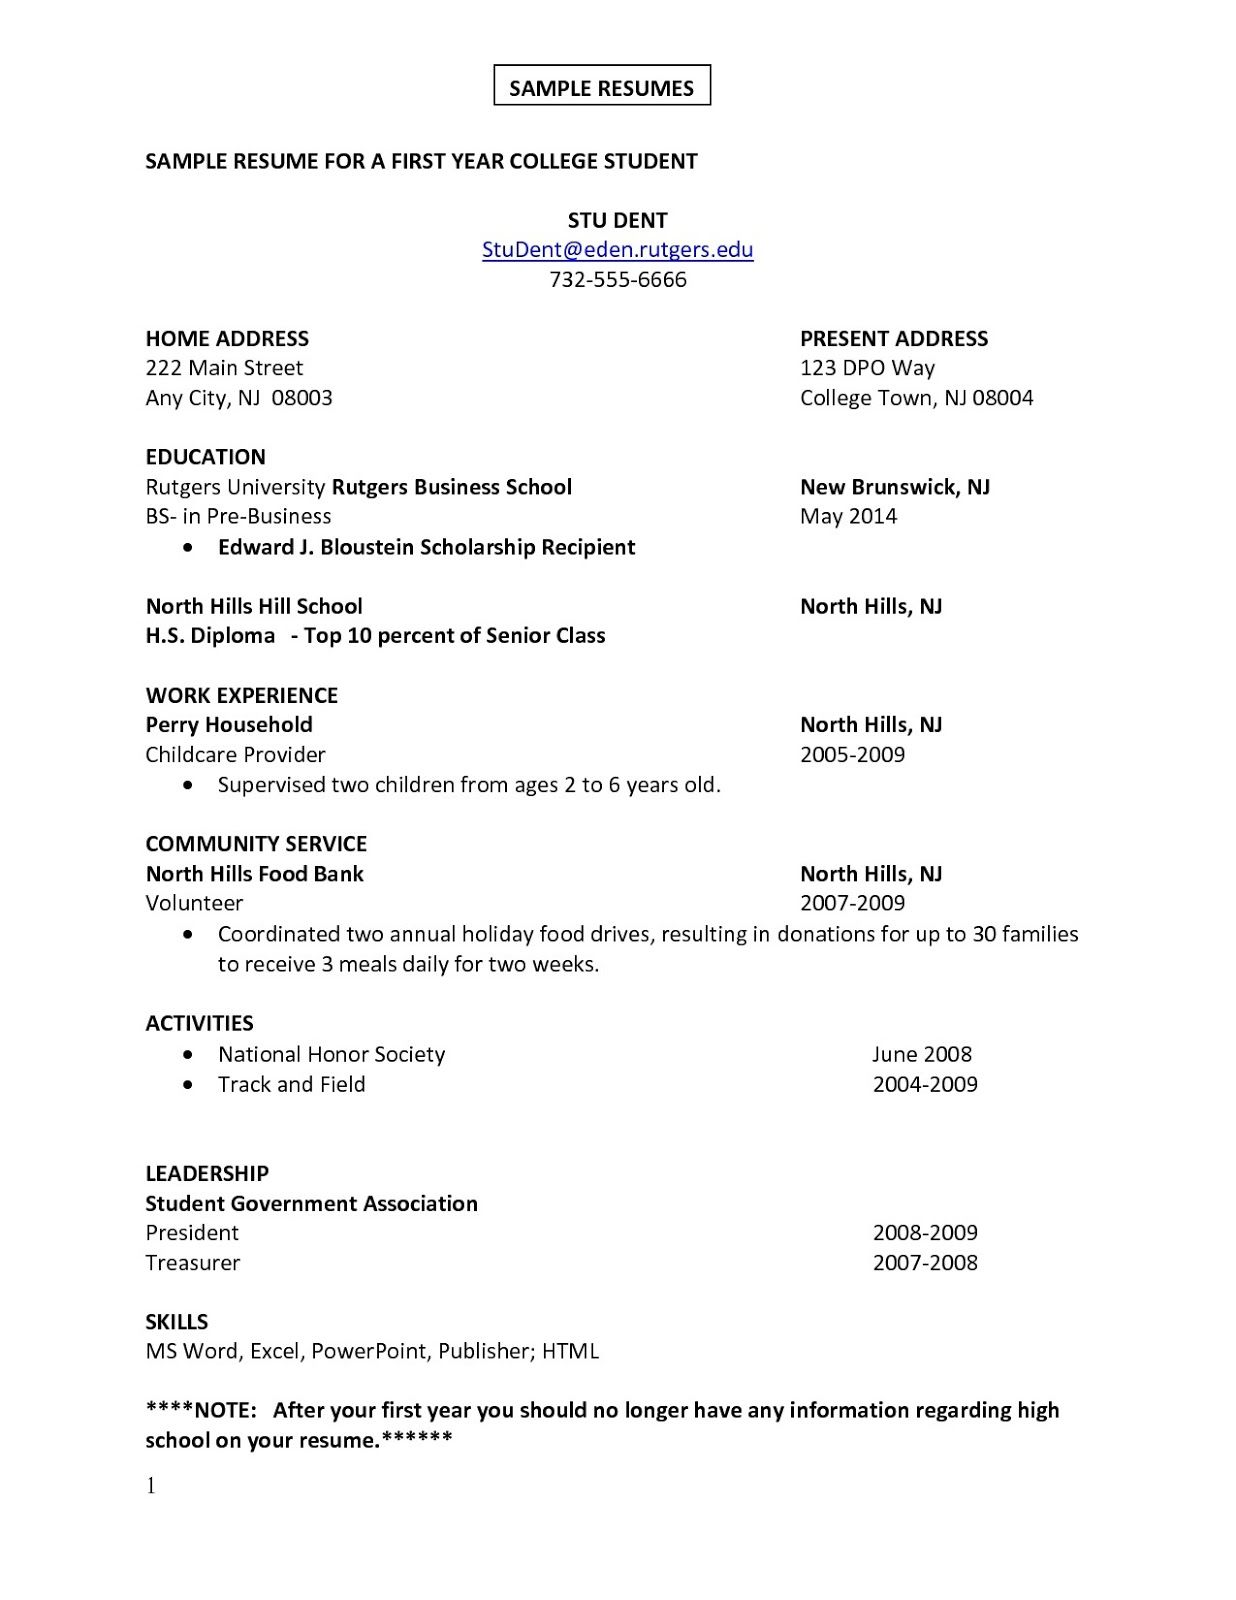 Skills For A High School Student Resume First Job Sample Resume Sample Resumes Sample Resumes